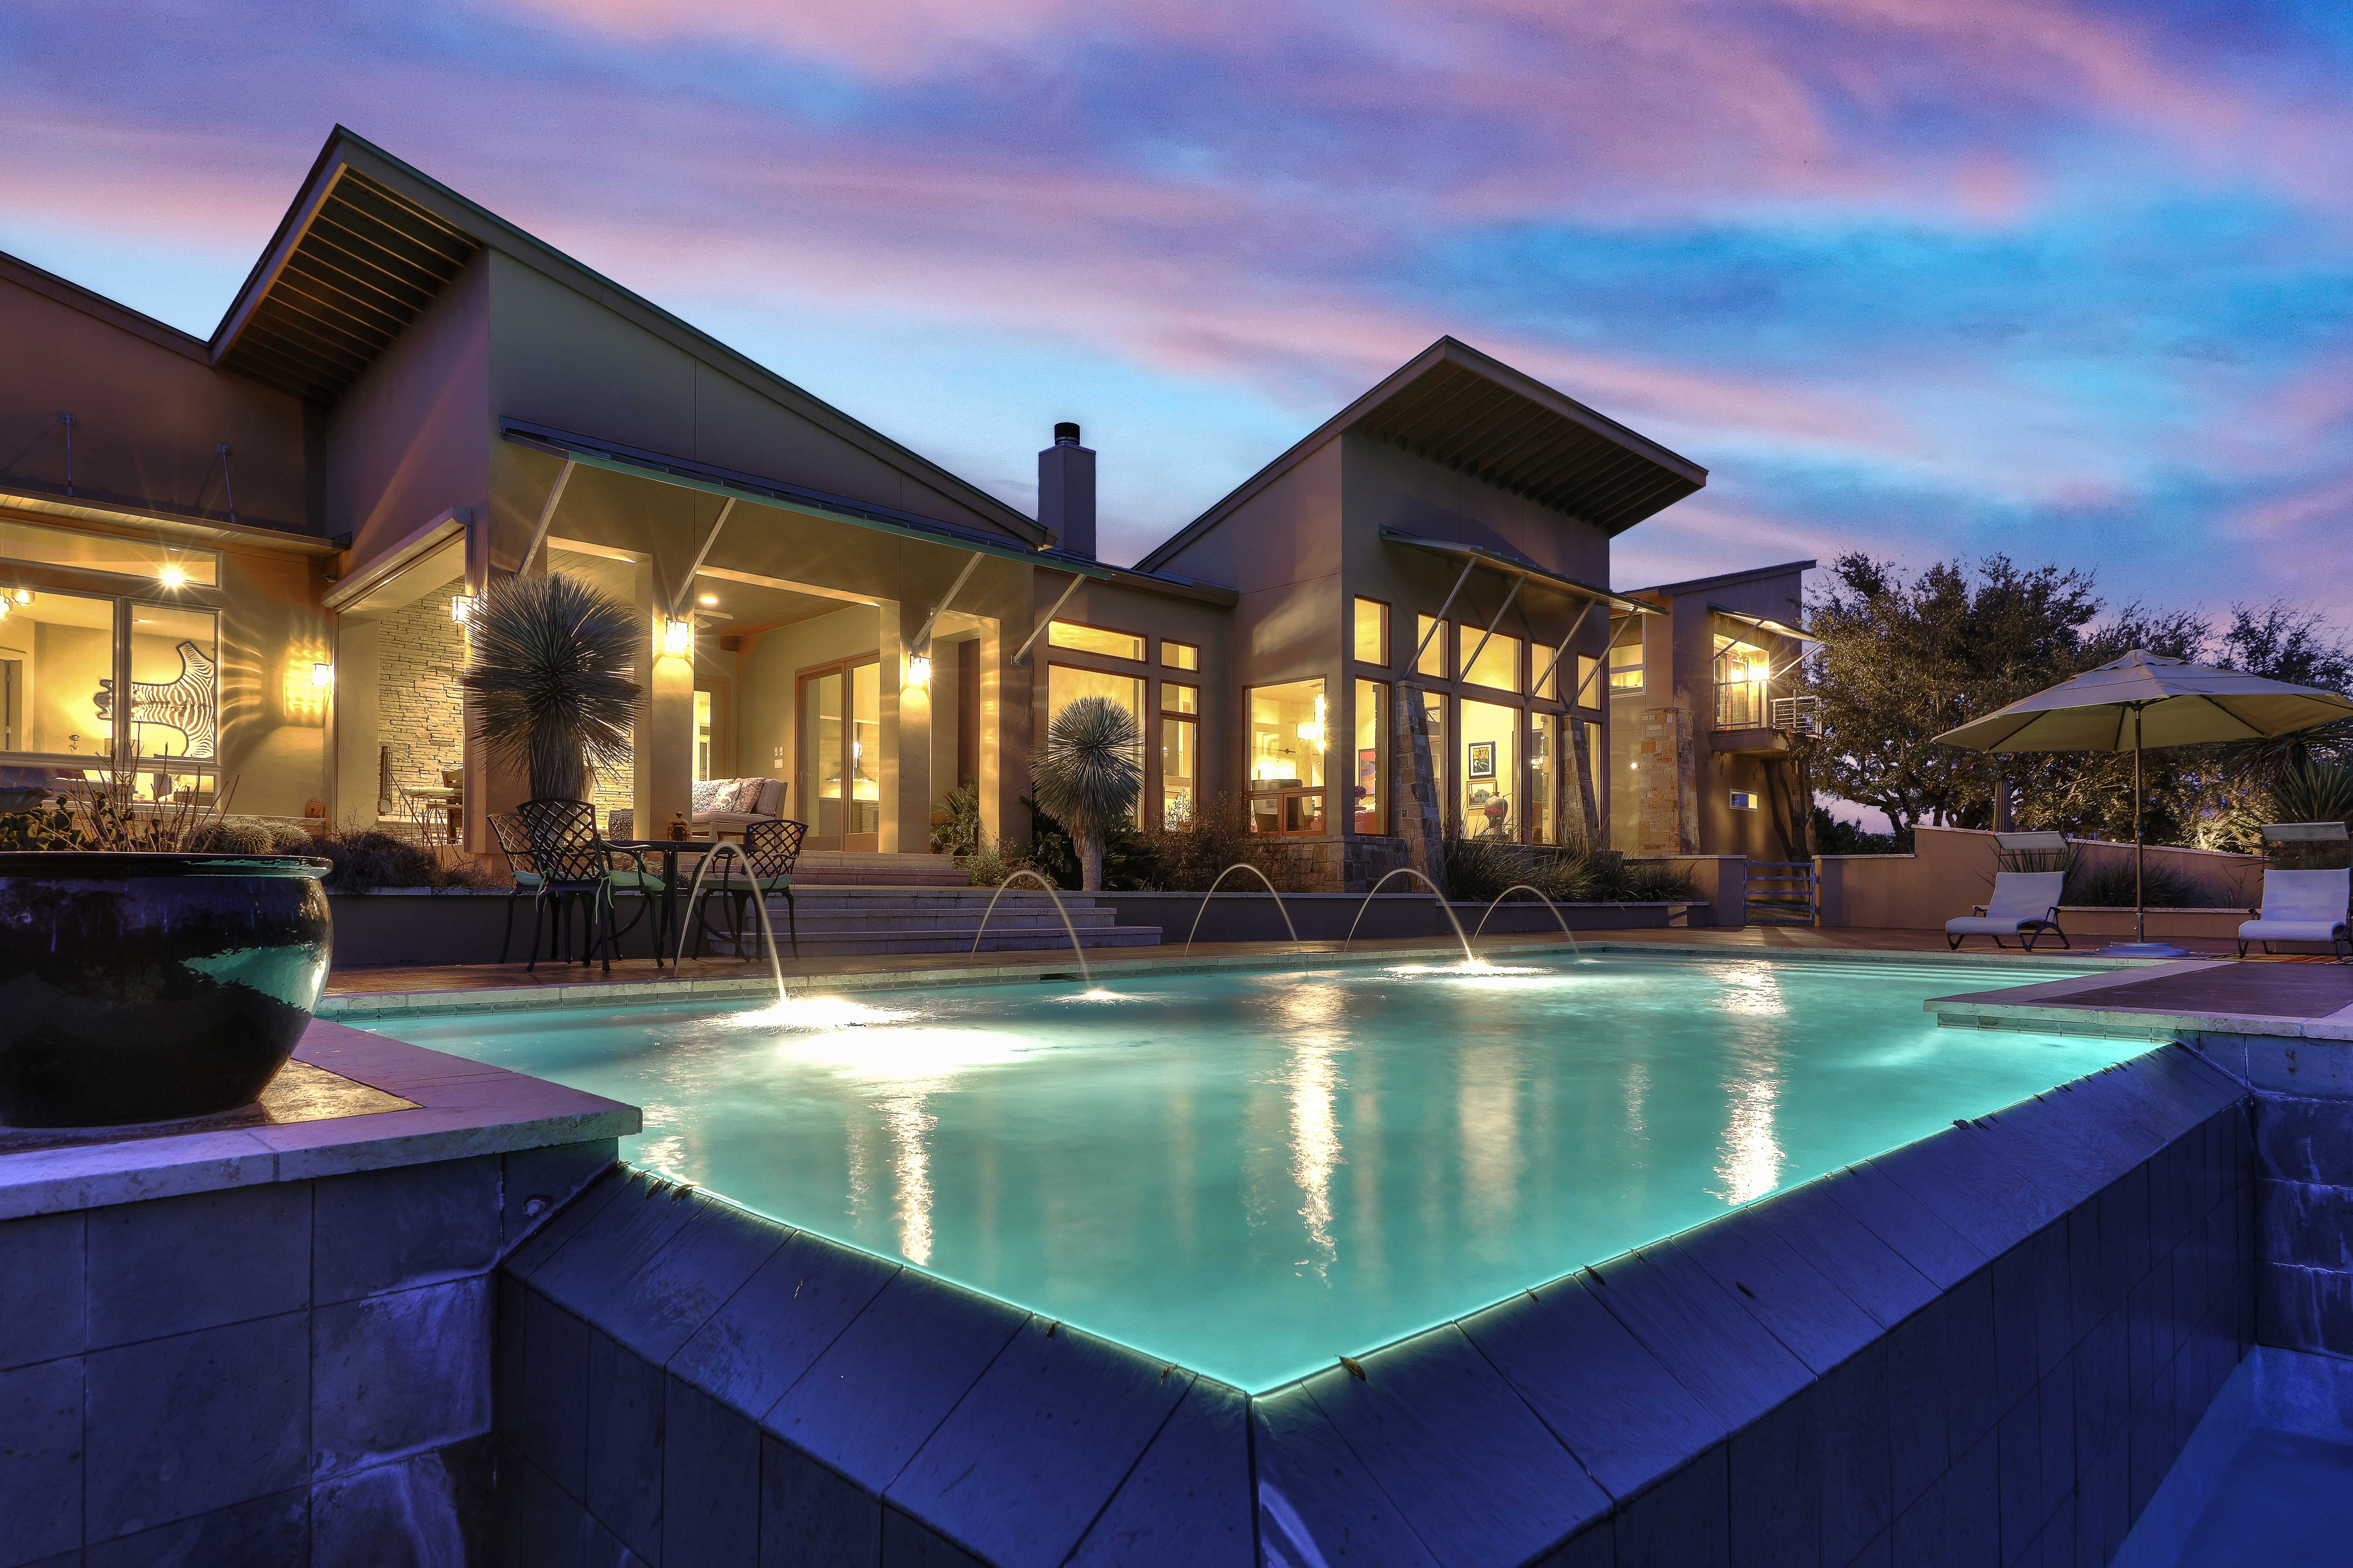 ​5 Key Marketing Activities to Sell Luxury Real Estate